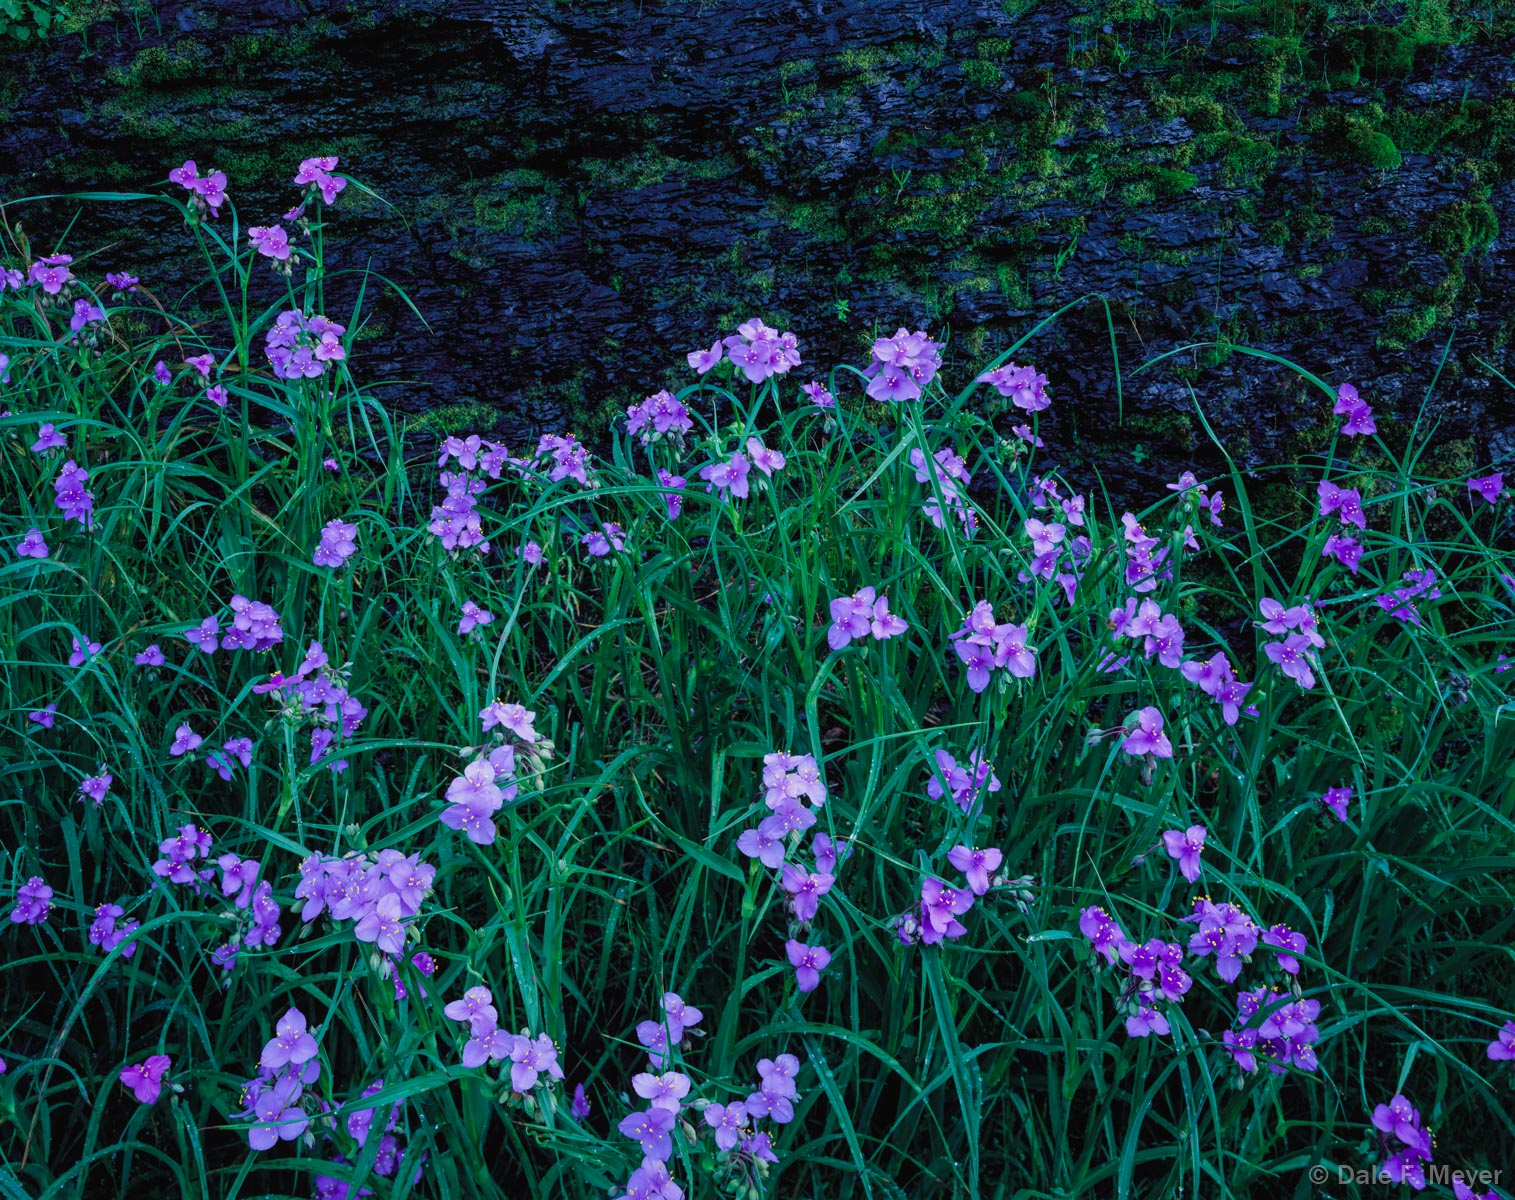 4X5 Fuji 50 Slide Film,bluff,spider worts,spring flowers